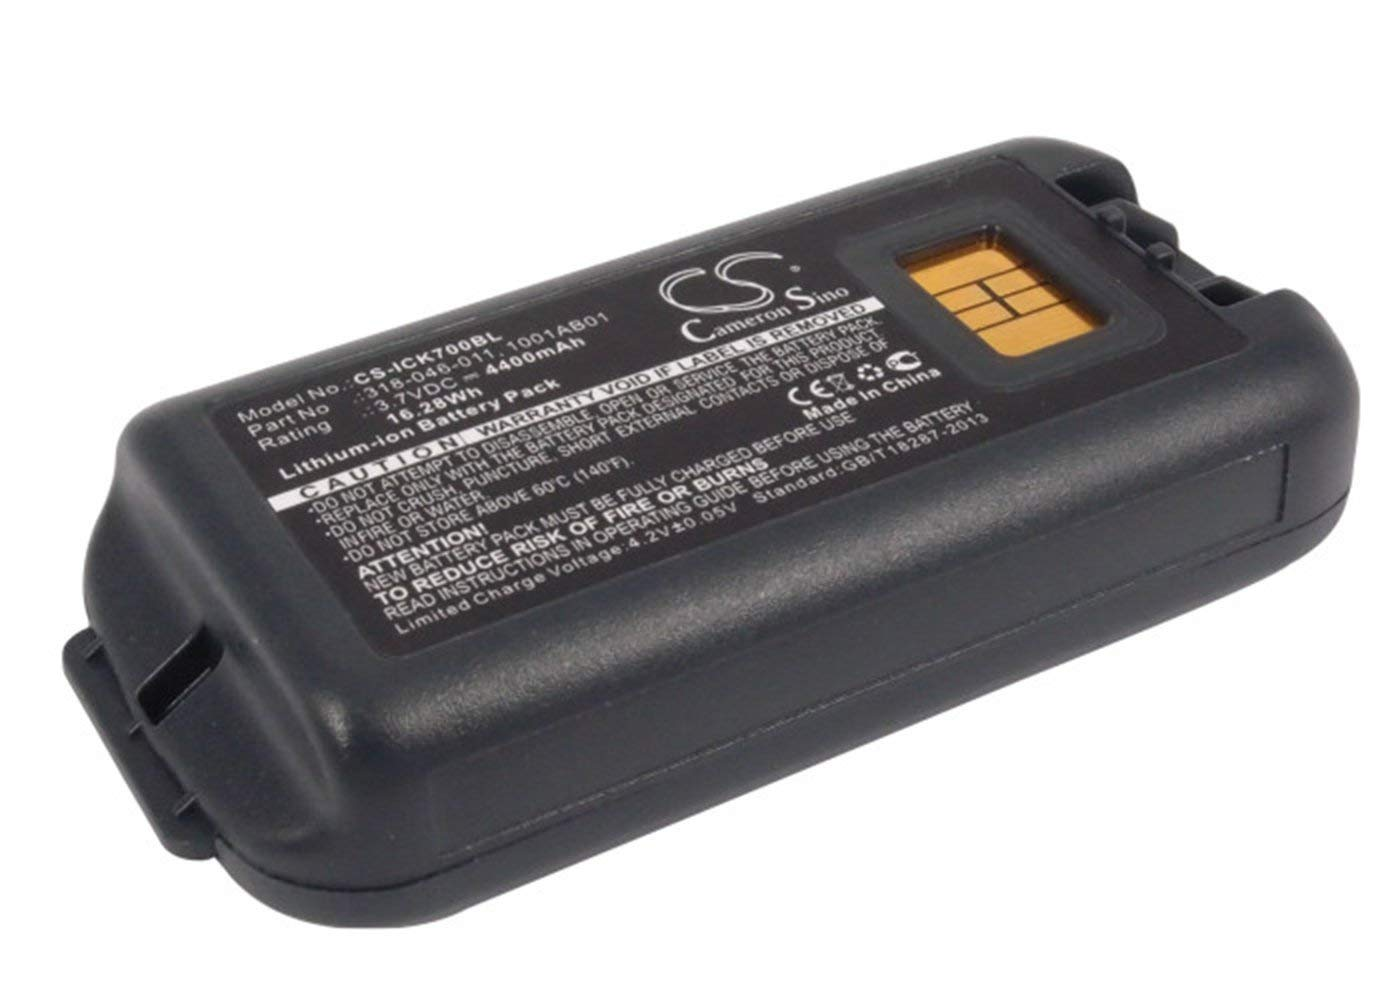 VINTRONS, INTERMEC 1001AB01, 1001AB02, 318-046-001, 318-046-011 Replacement Battery for INTERMEC CK70, CK71,